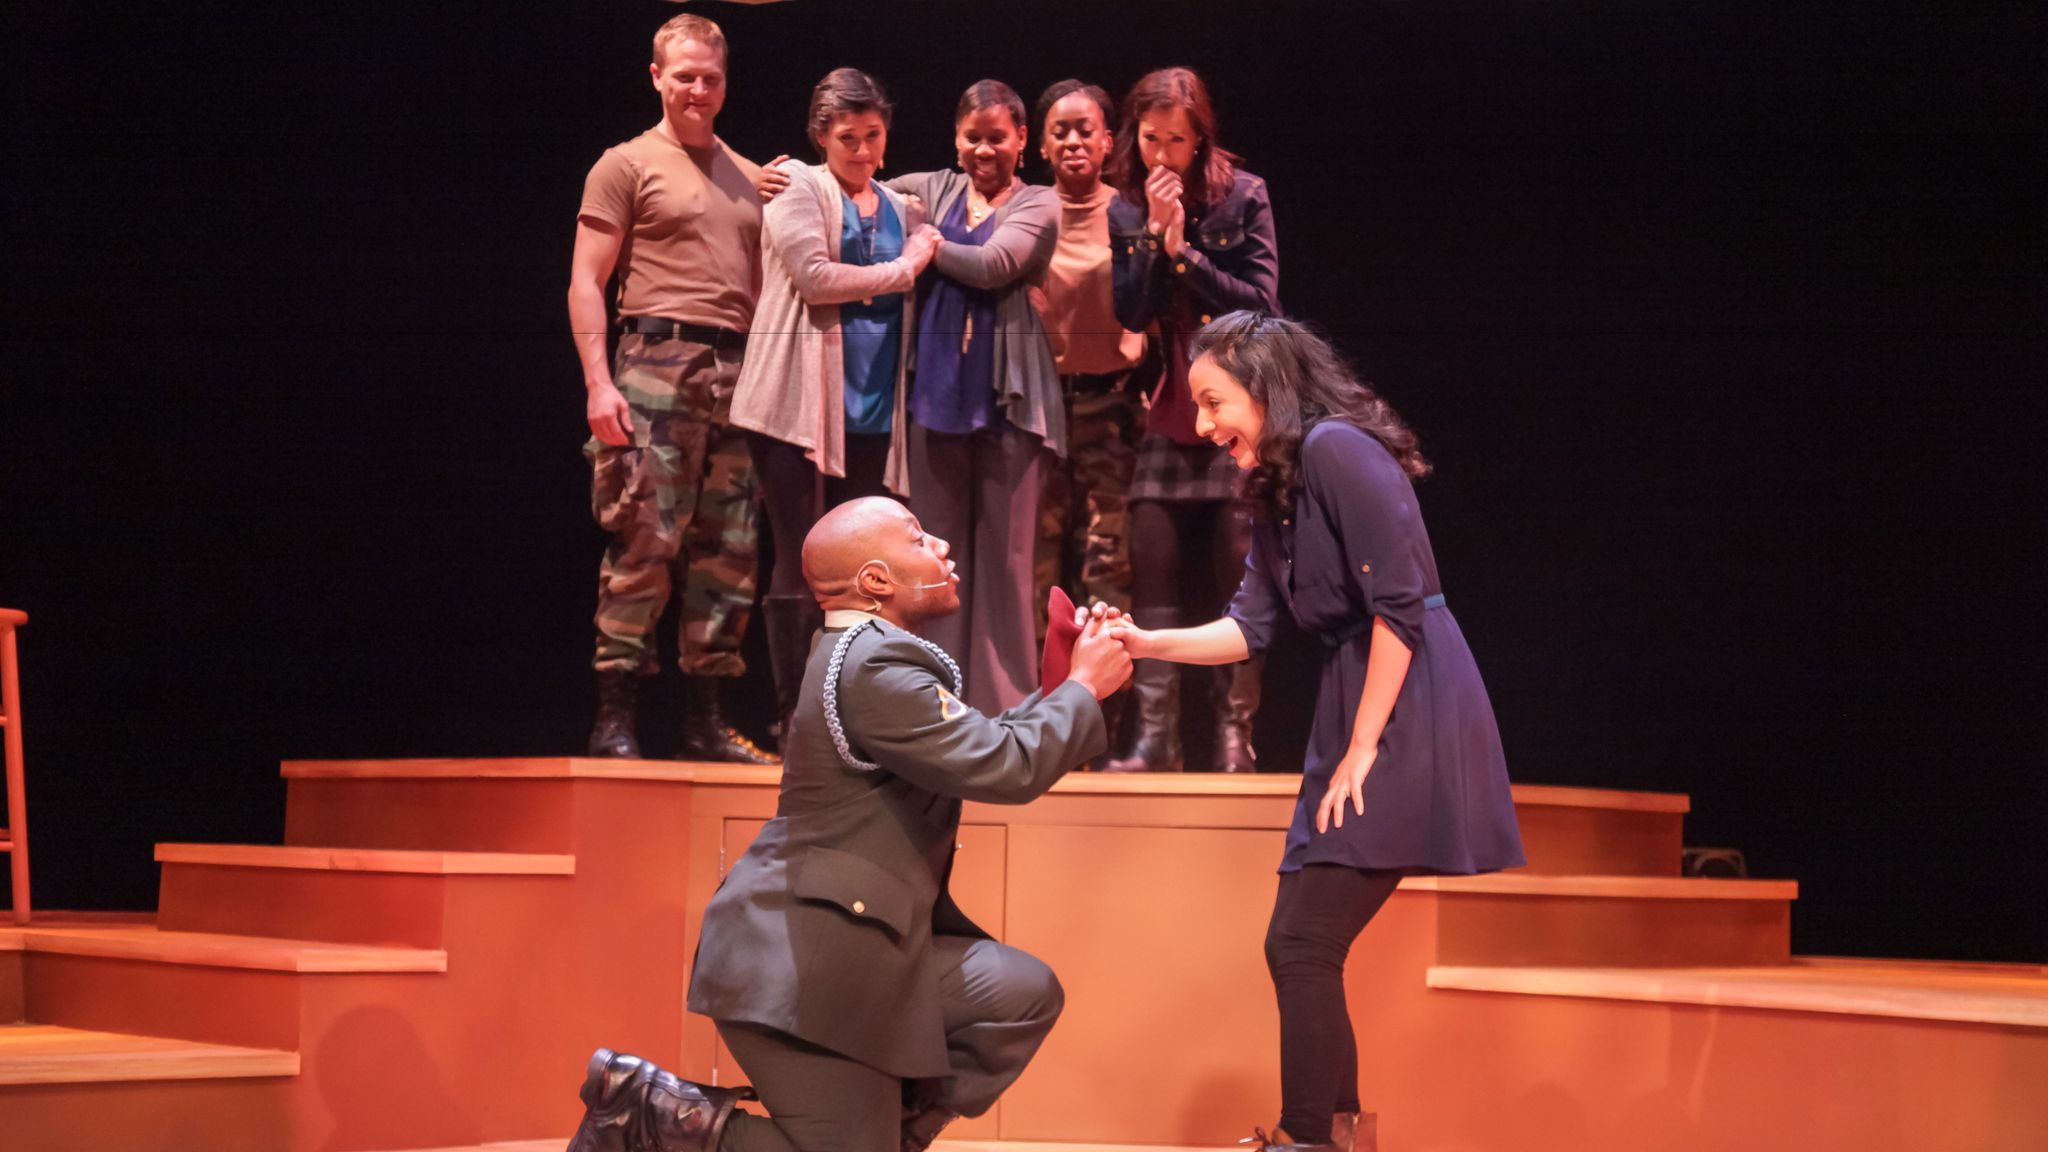 """A scene from """"Downrange,"""" inspired by the lives of military families at Fort Bragg, at the Cape Fear Regional Theatre in Fayetteville, N.C."""